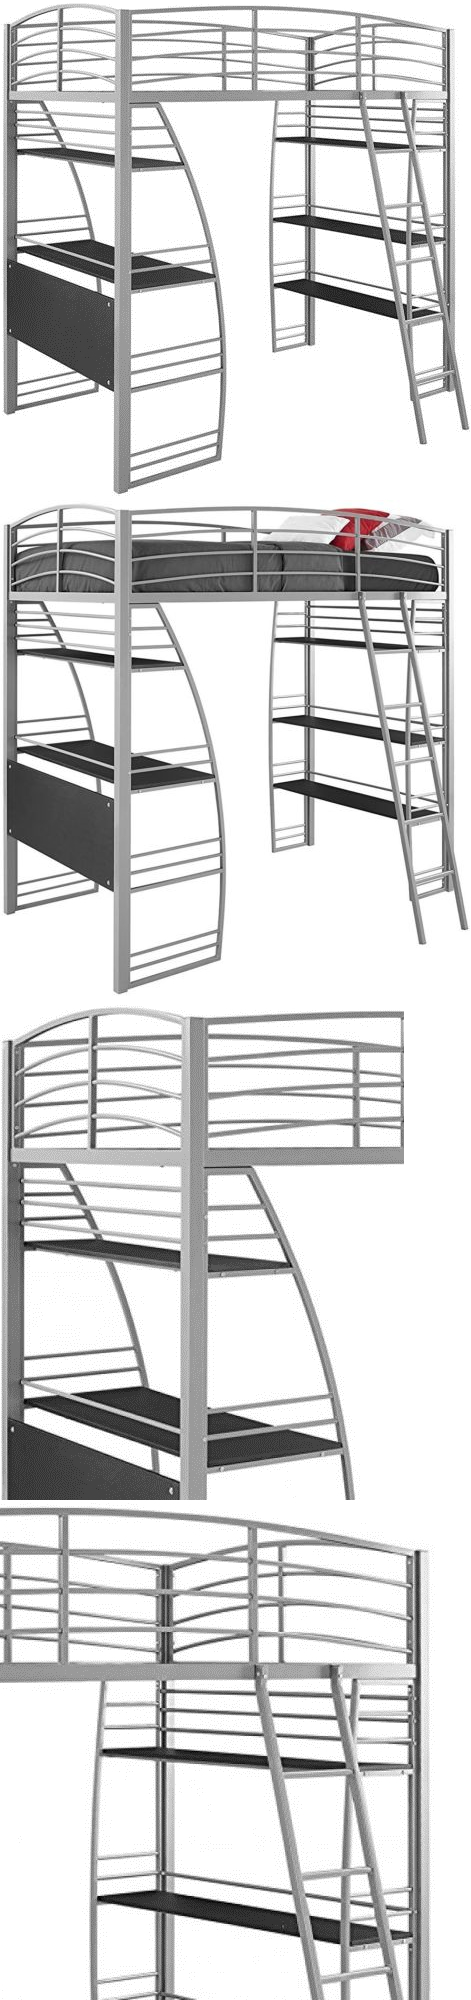 Loft bed with desk and chair  Bedroom Furniture  Dhp Studio Loft Bunk Bed Over Desk And